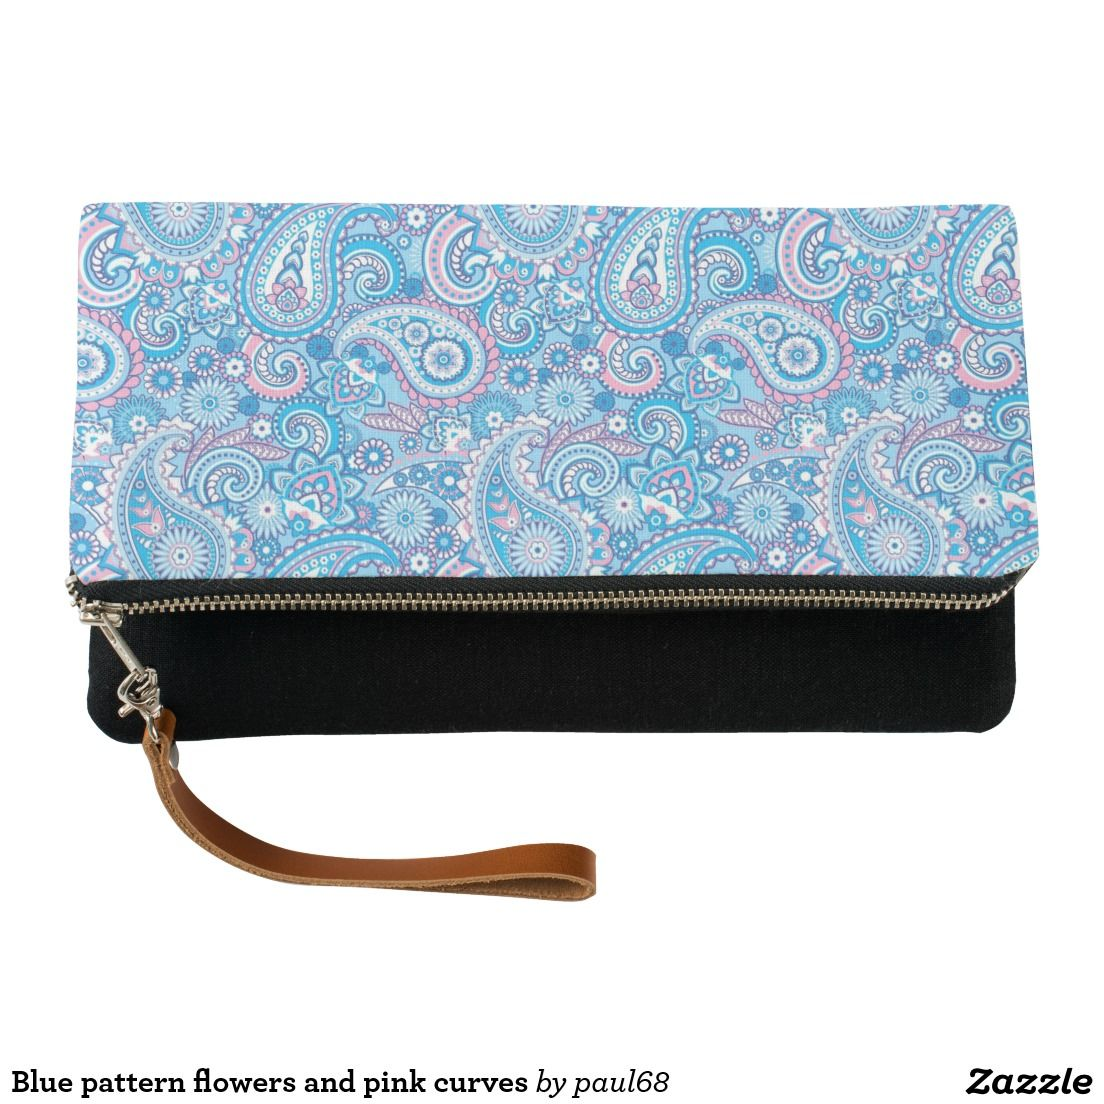 Blue pattern flowers and pink curves clutch